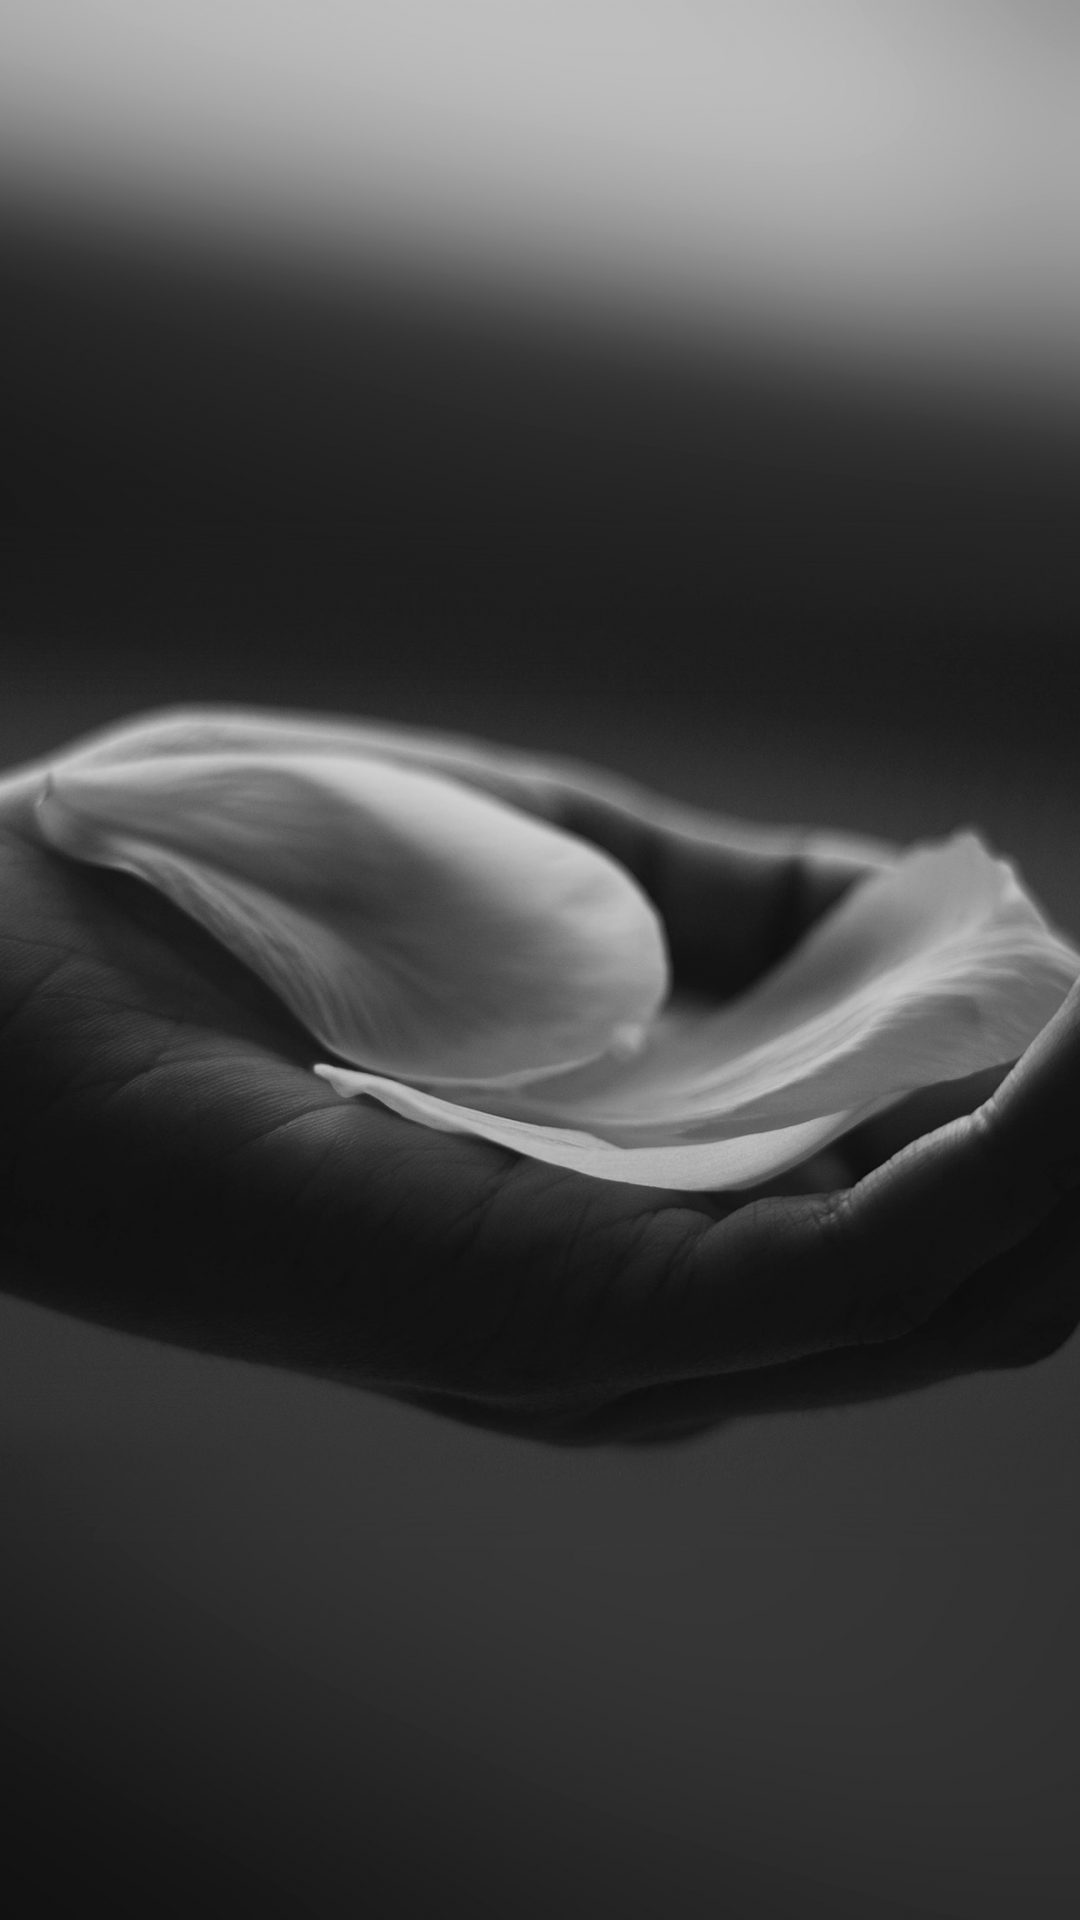 Hand Flower Dark Bw Human Nature